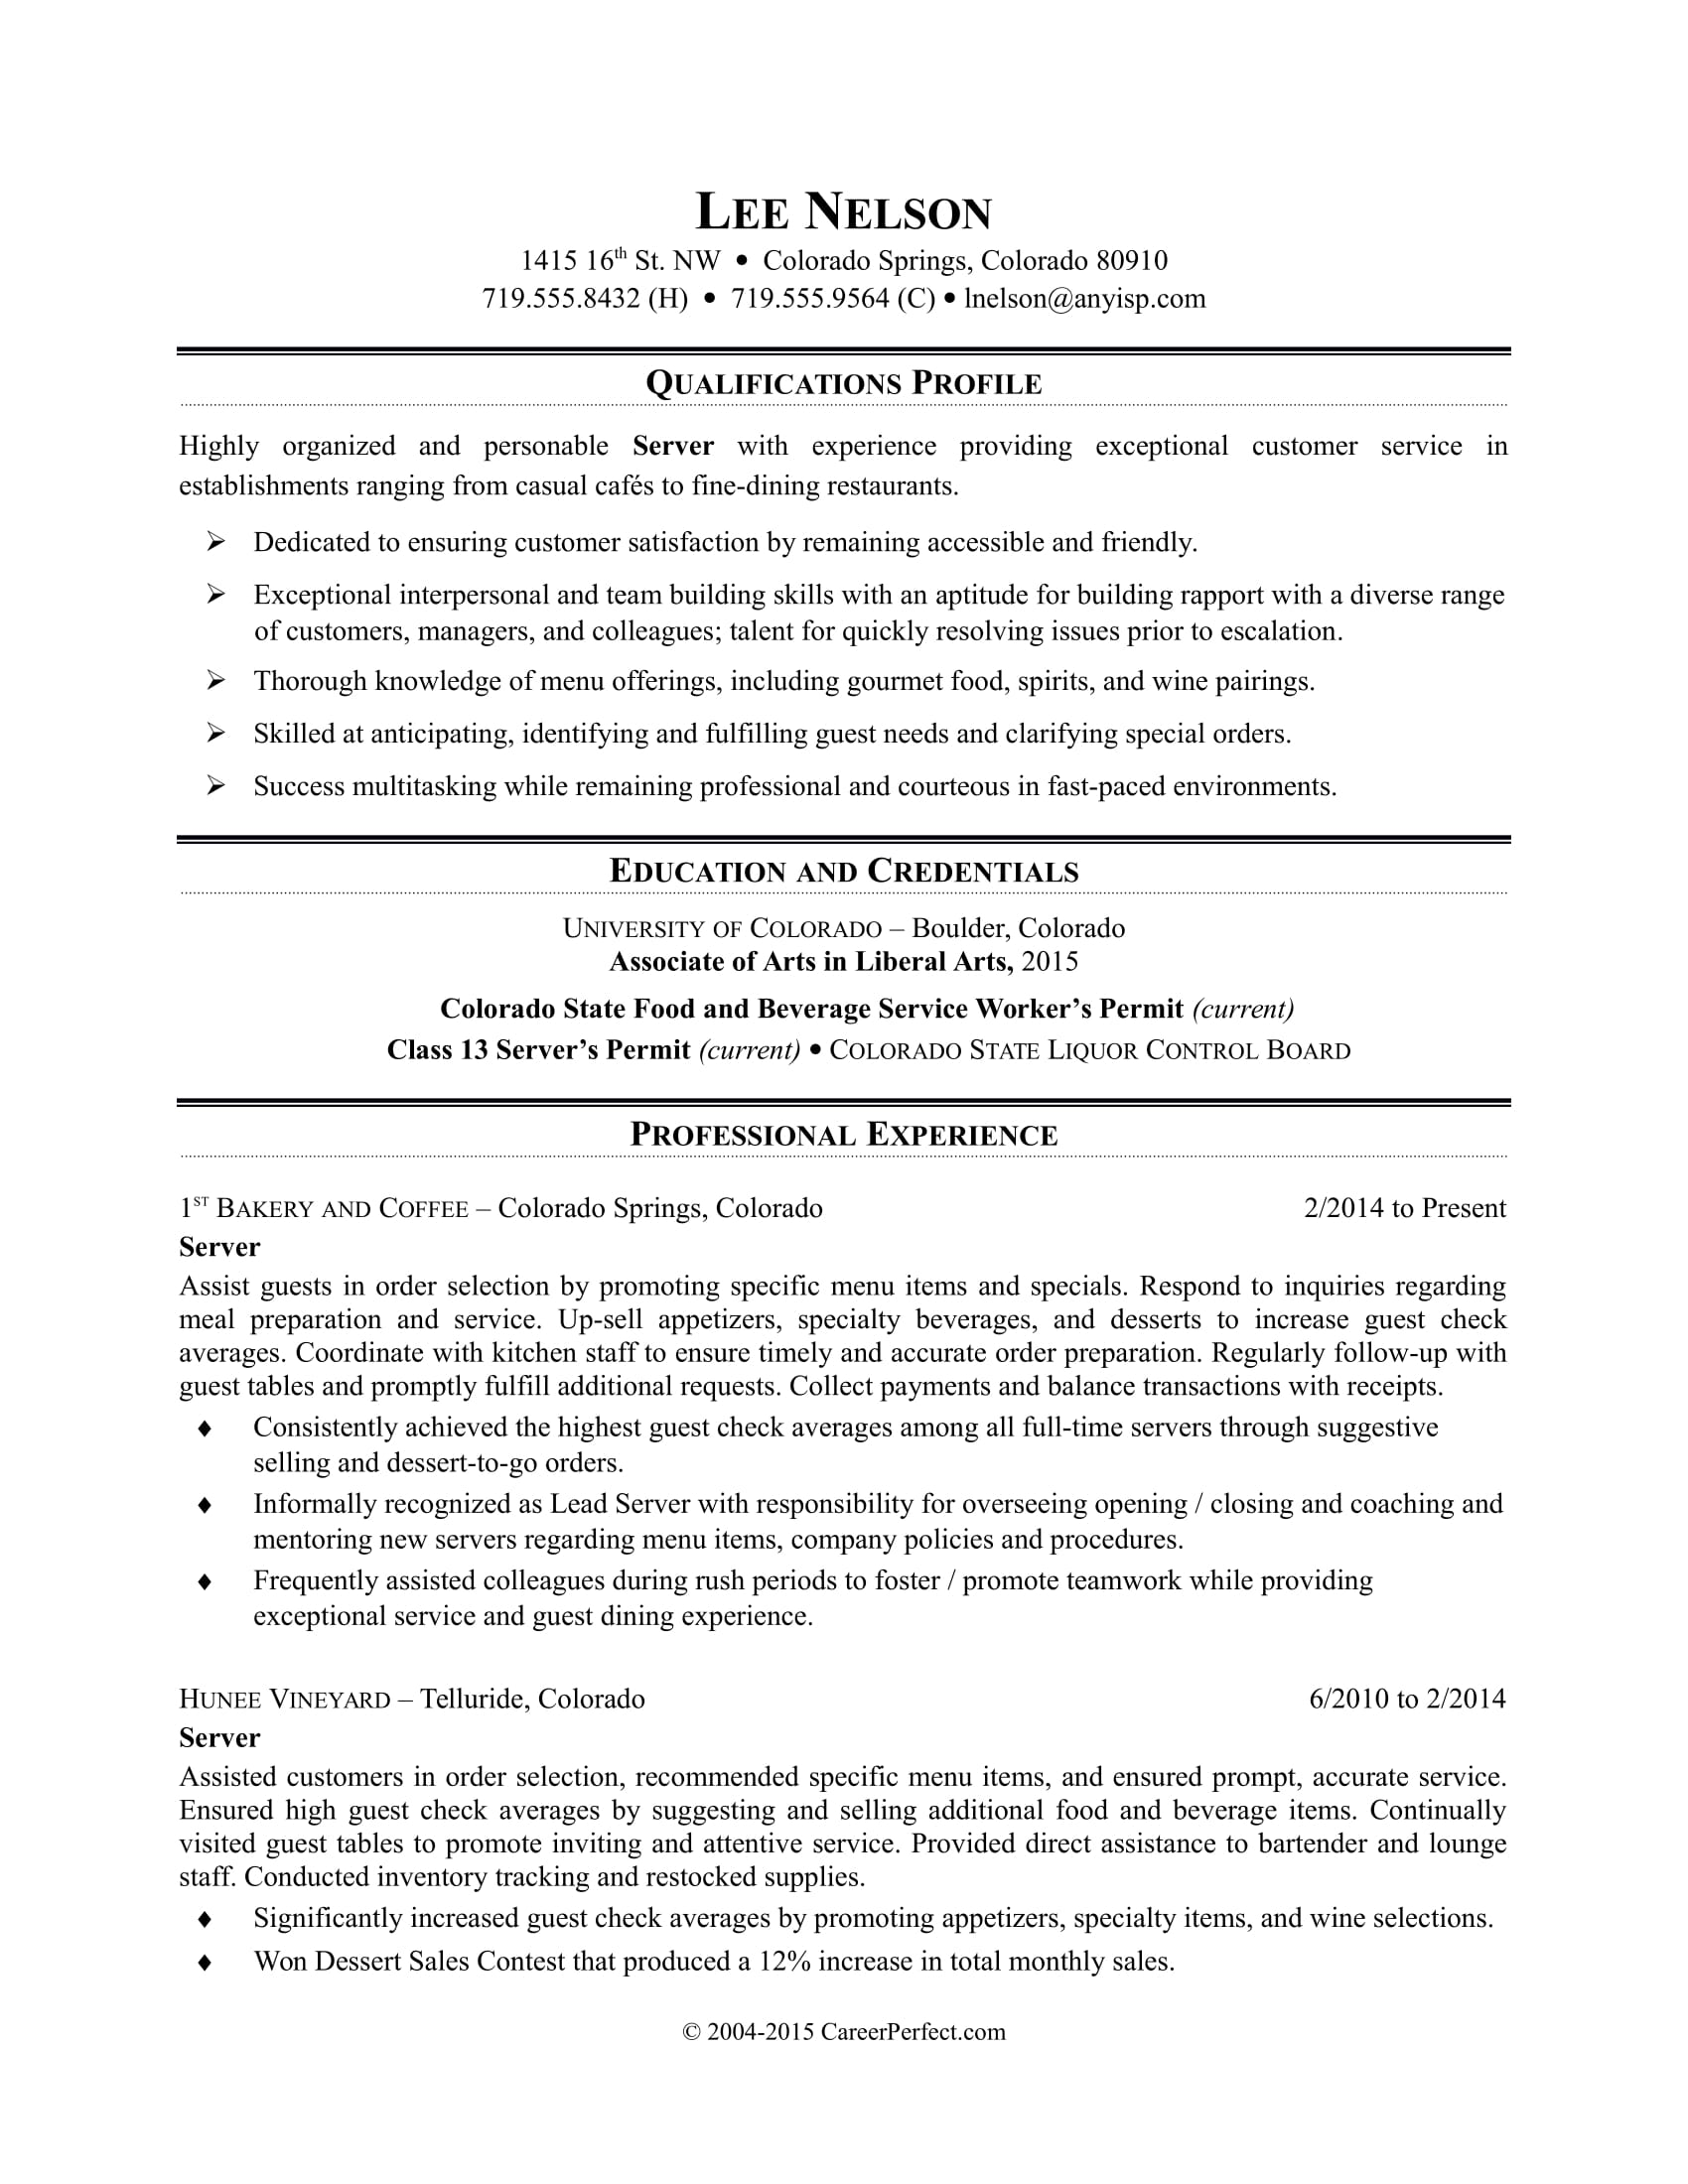 Awesome Sample Resume For A Restaurant Server In Restaurant Industry Resume